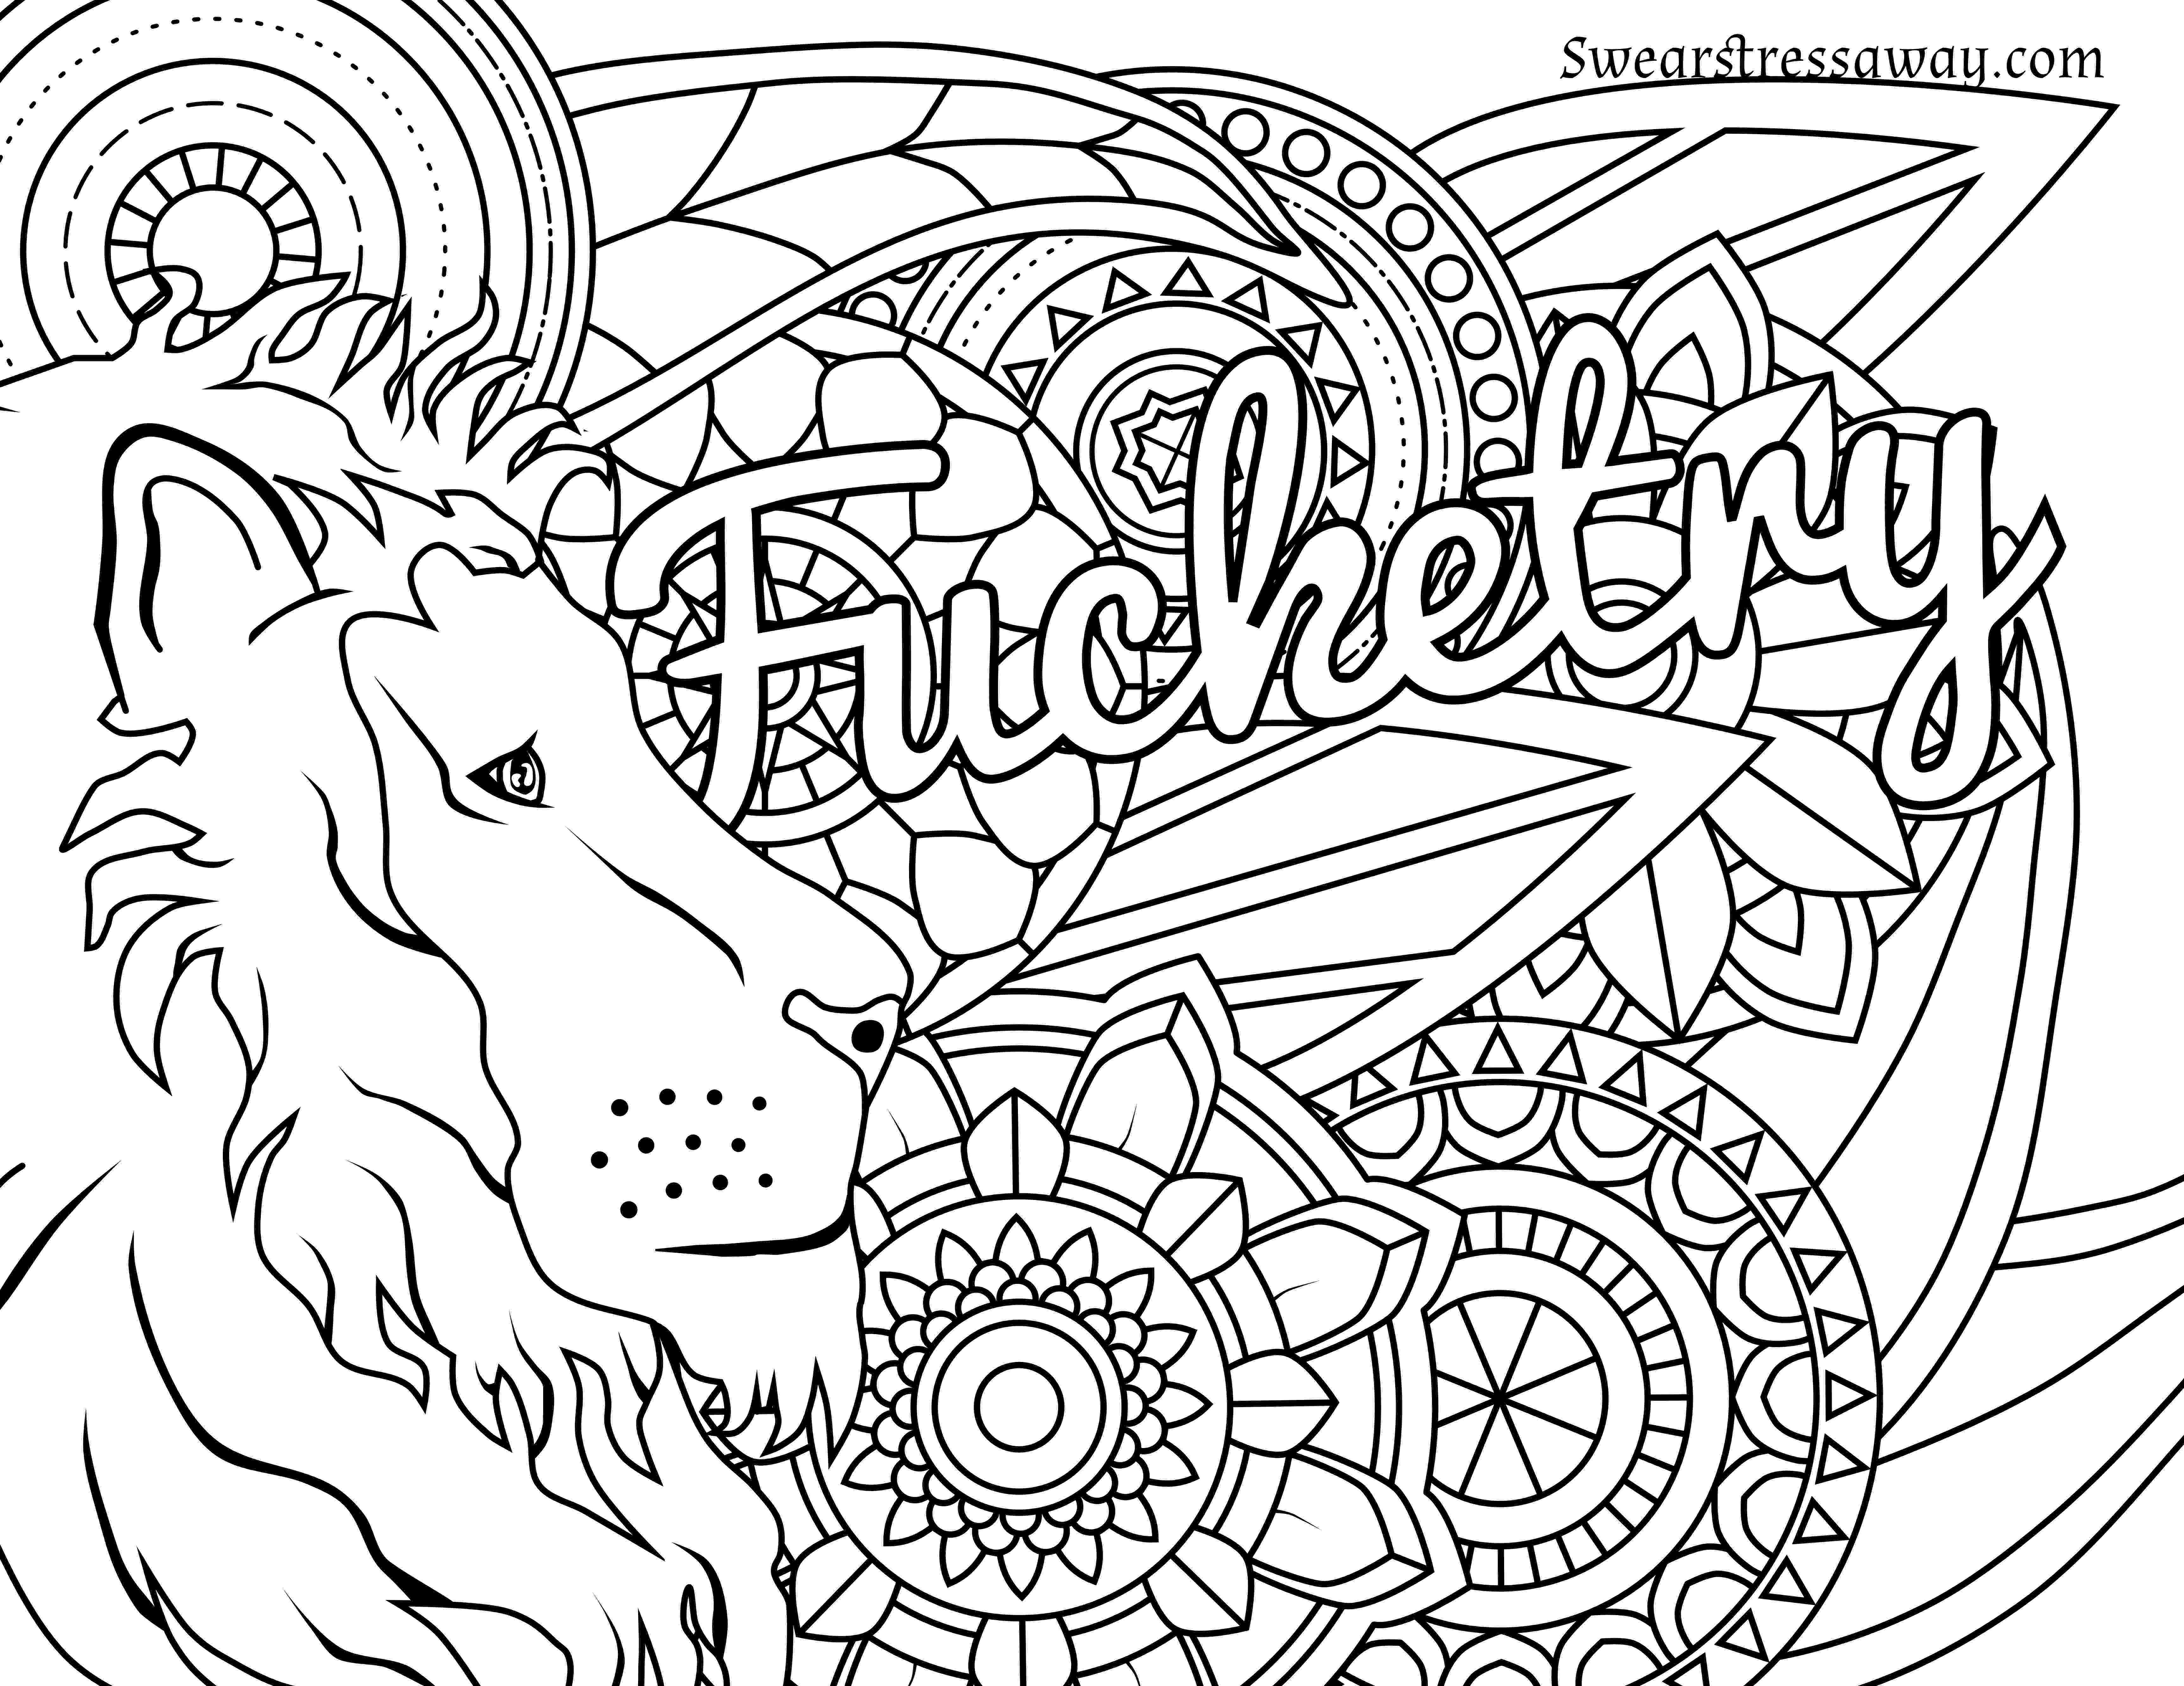 free online coloring pages for adults swear words coloring pages curse words at getdrawings free download swear pages coloring adults words online for free